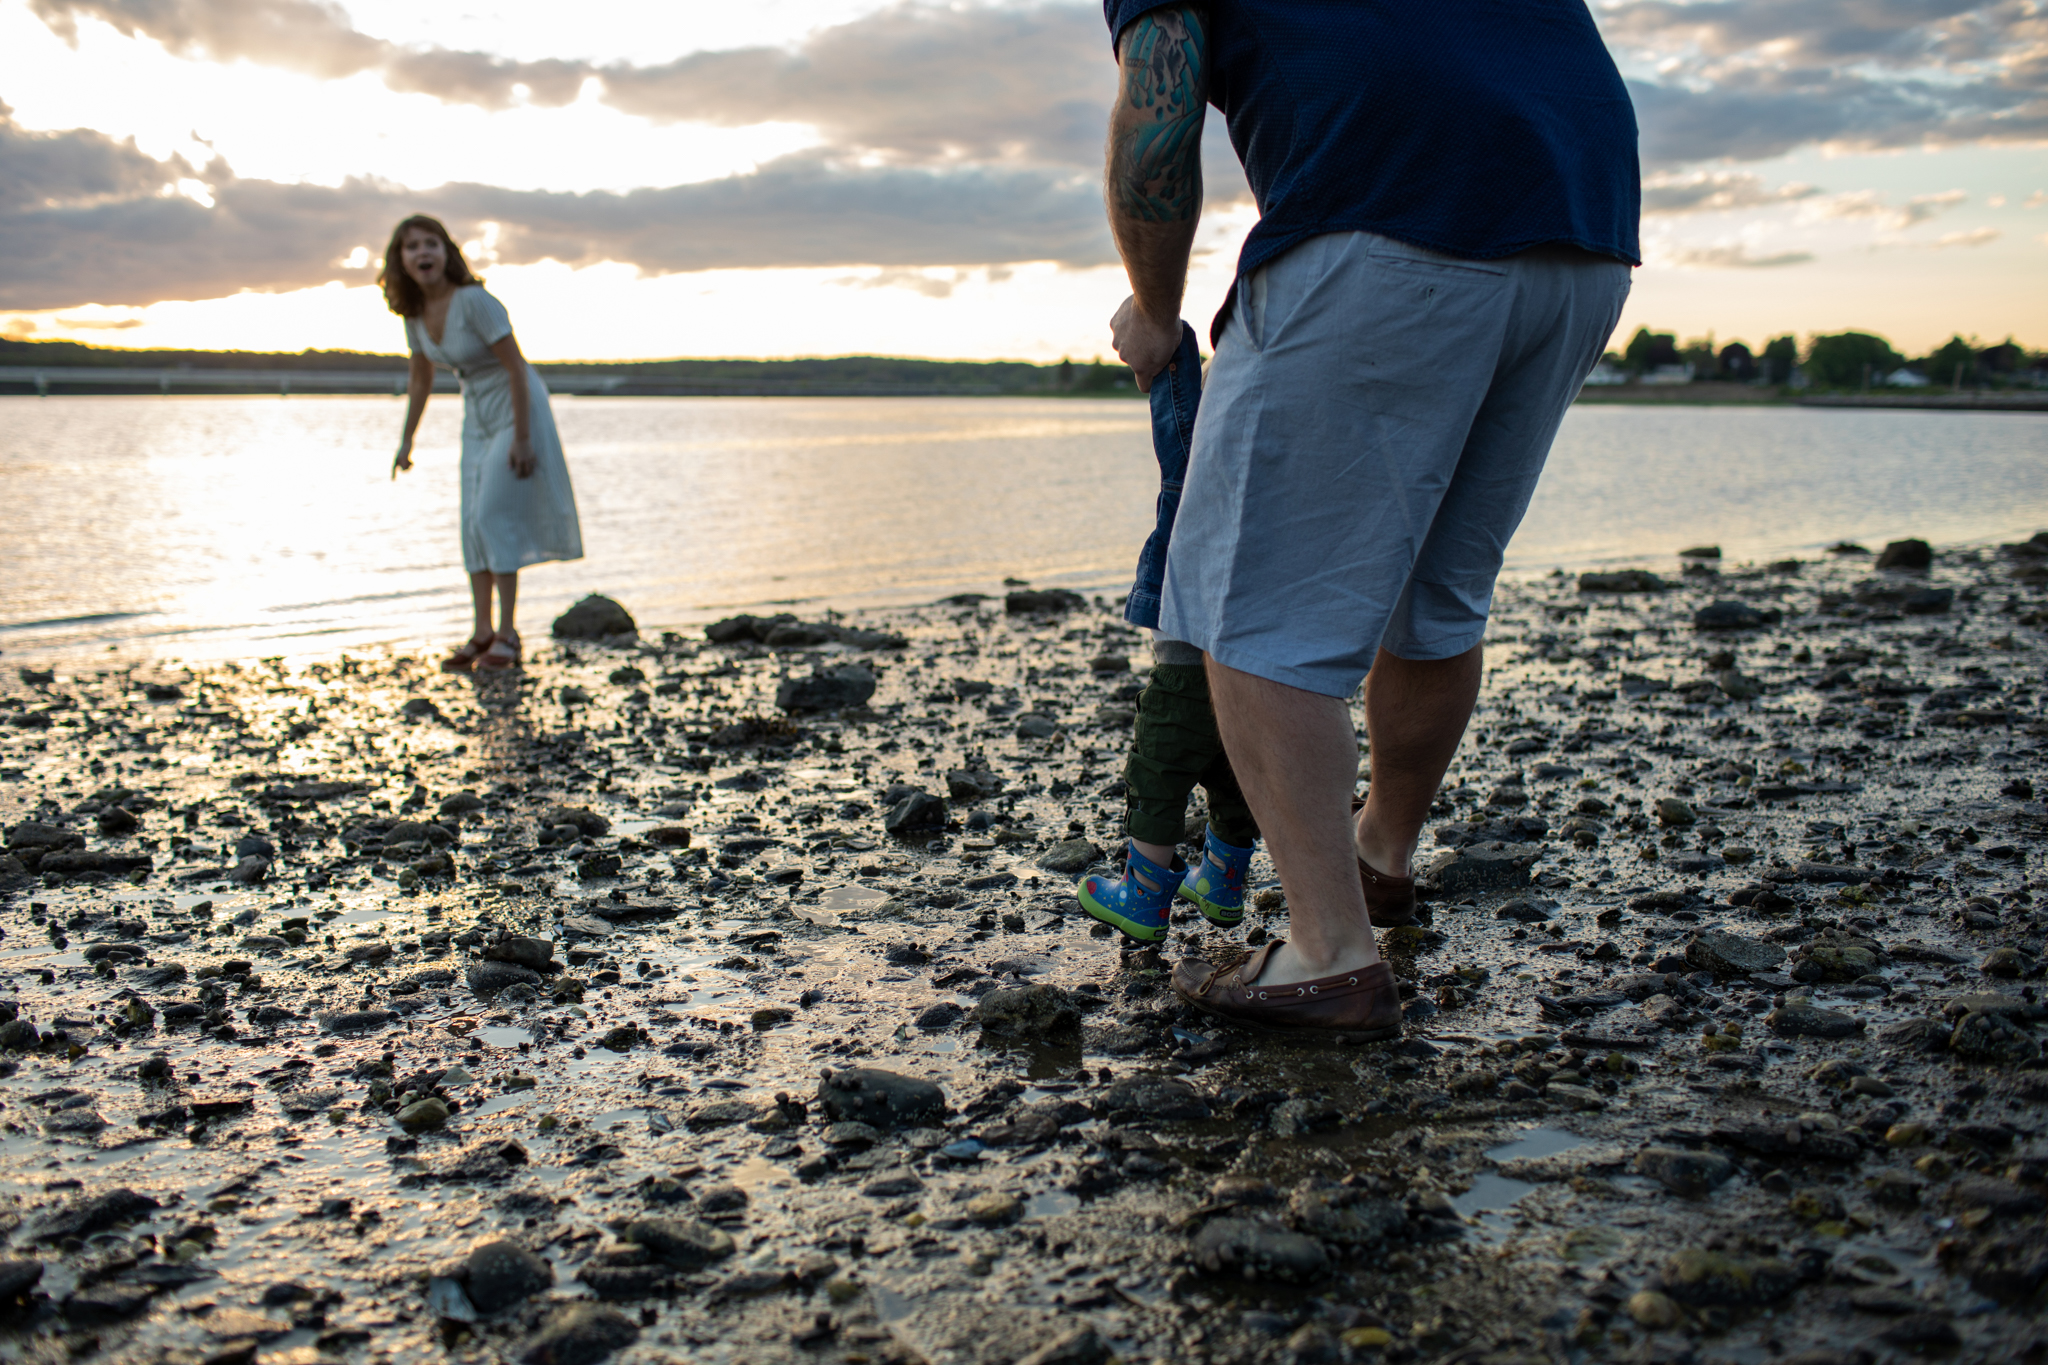 maine-family-photographer-beach-summer-128.jpg